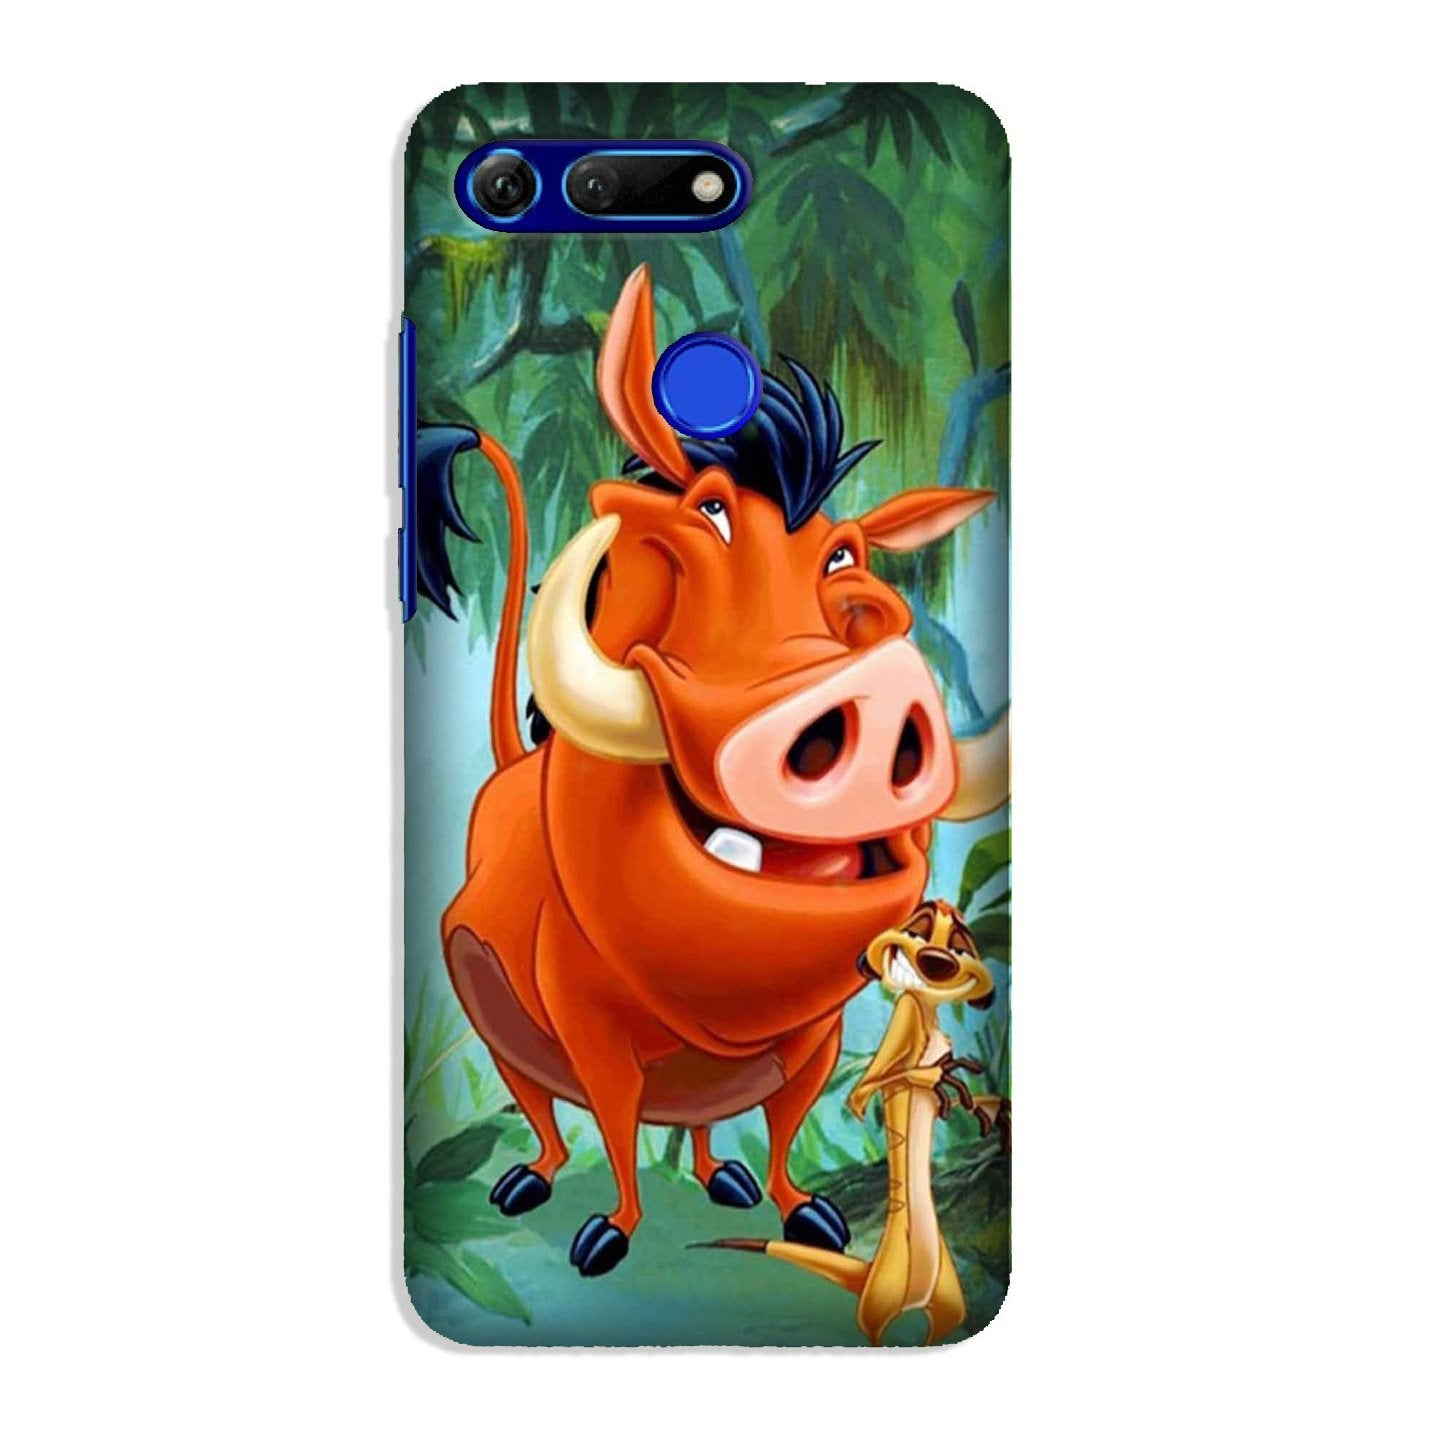 Timon and Pumbaa Mobile Back Case for Honor View 20 (Design - 305)